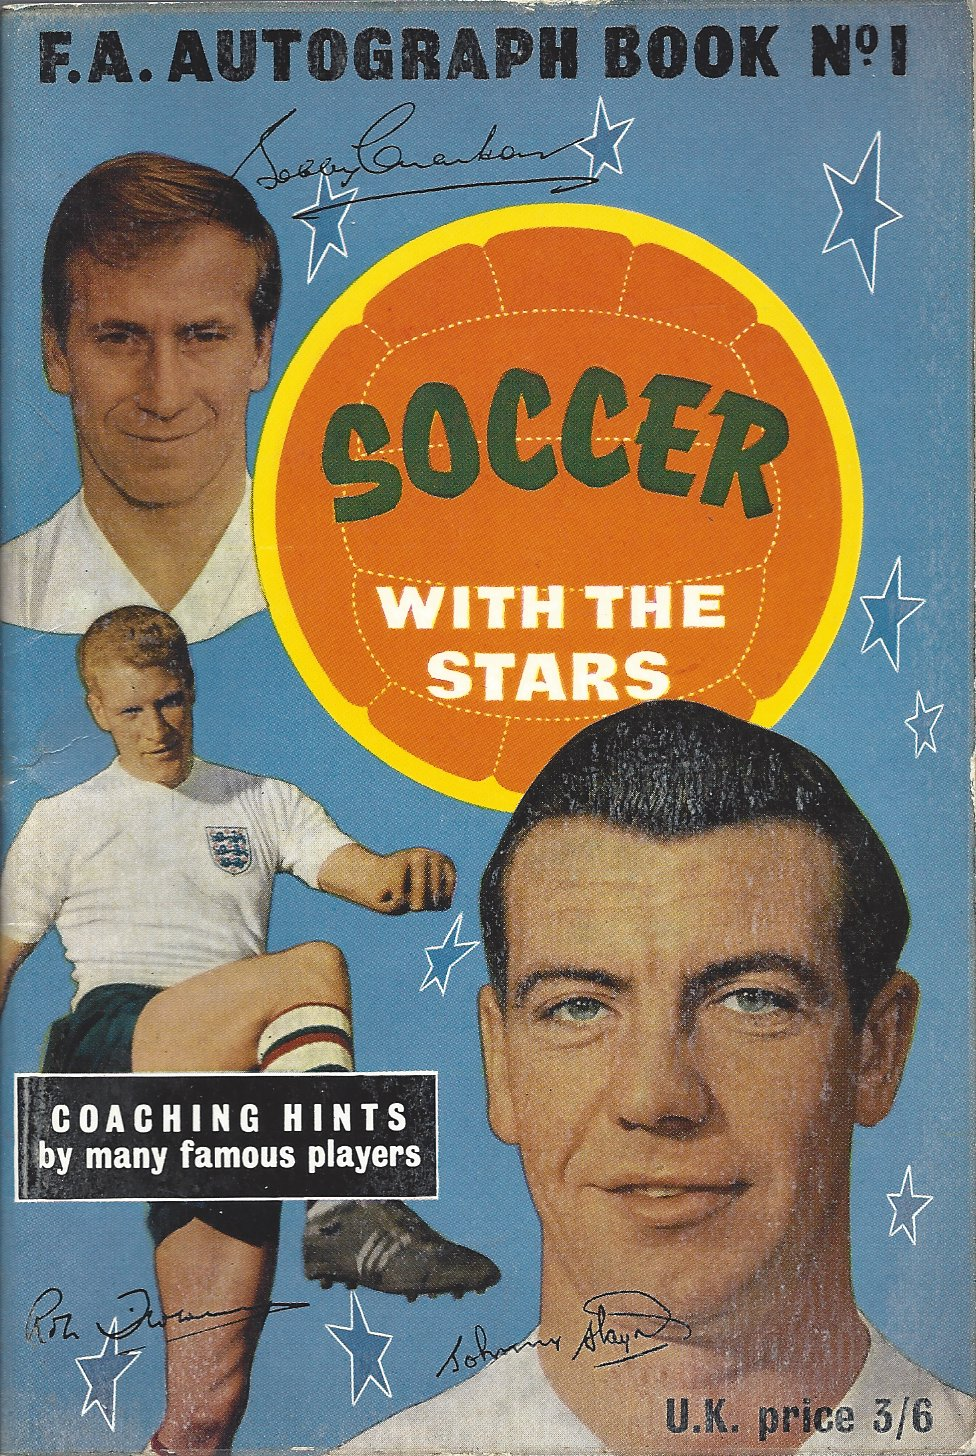 - Soccer with the stars -F.A. Autograph Book No 1